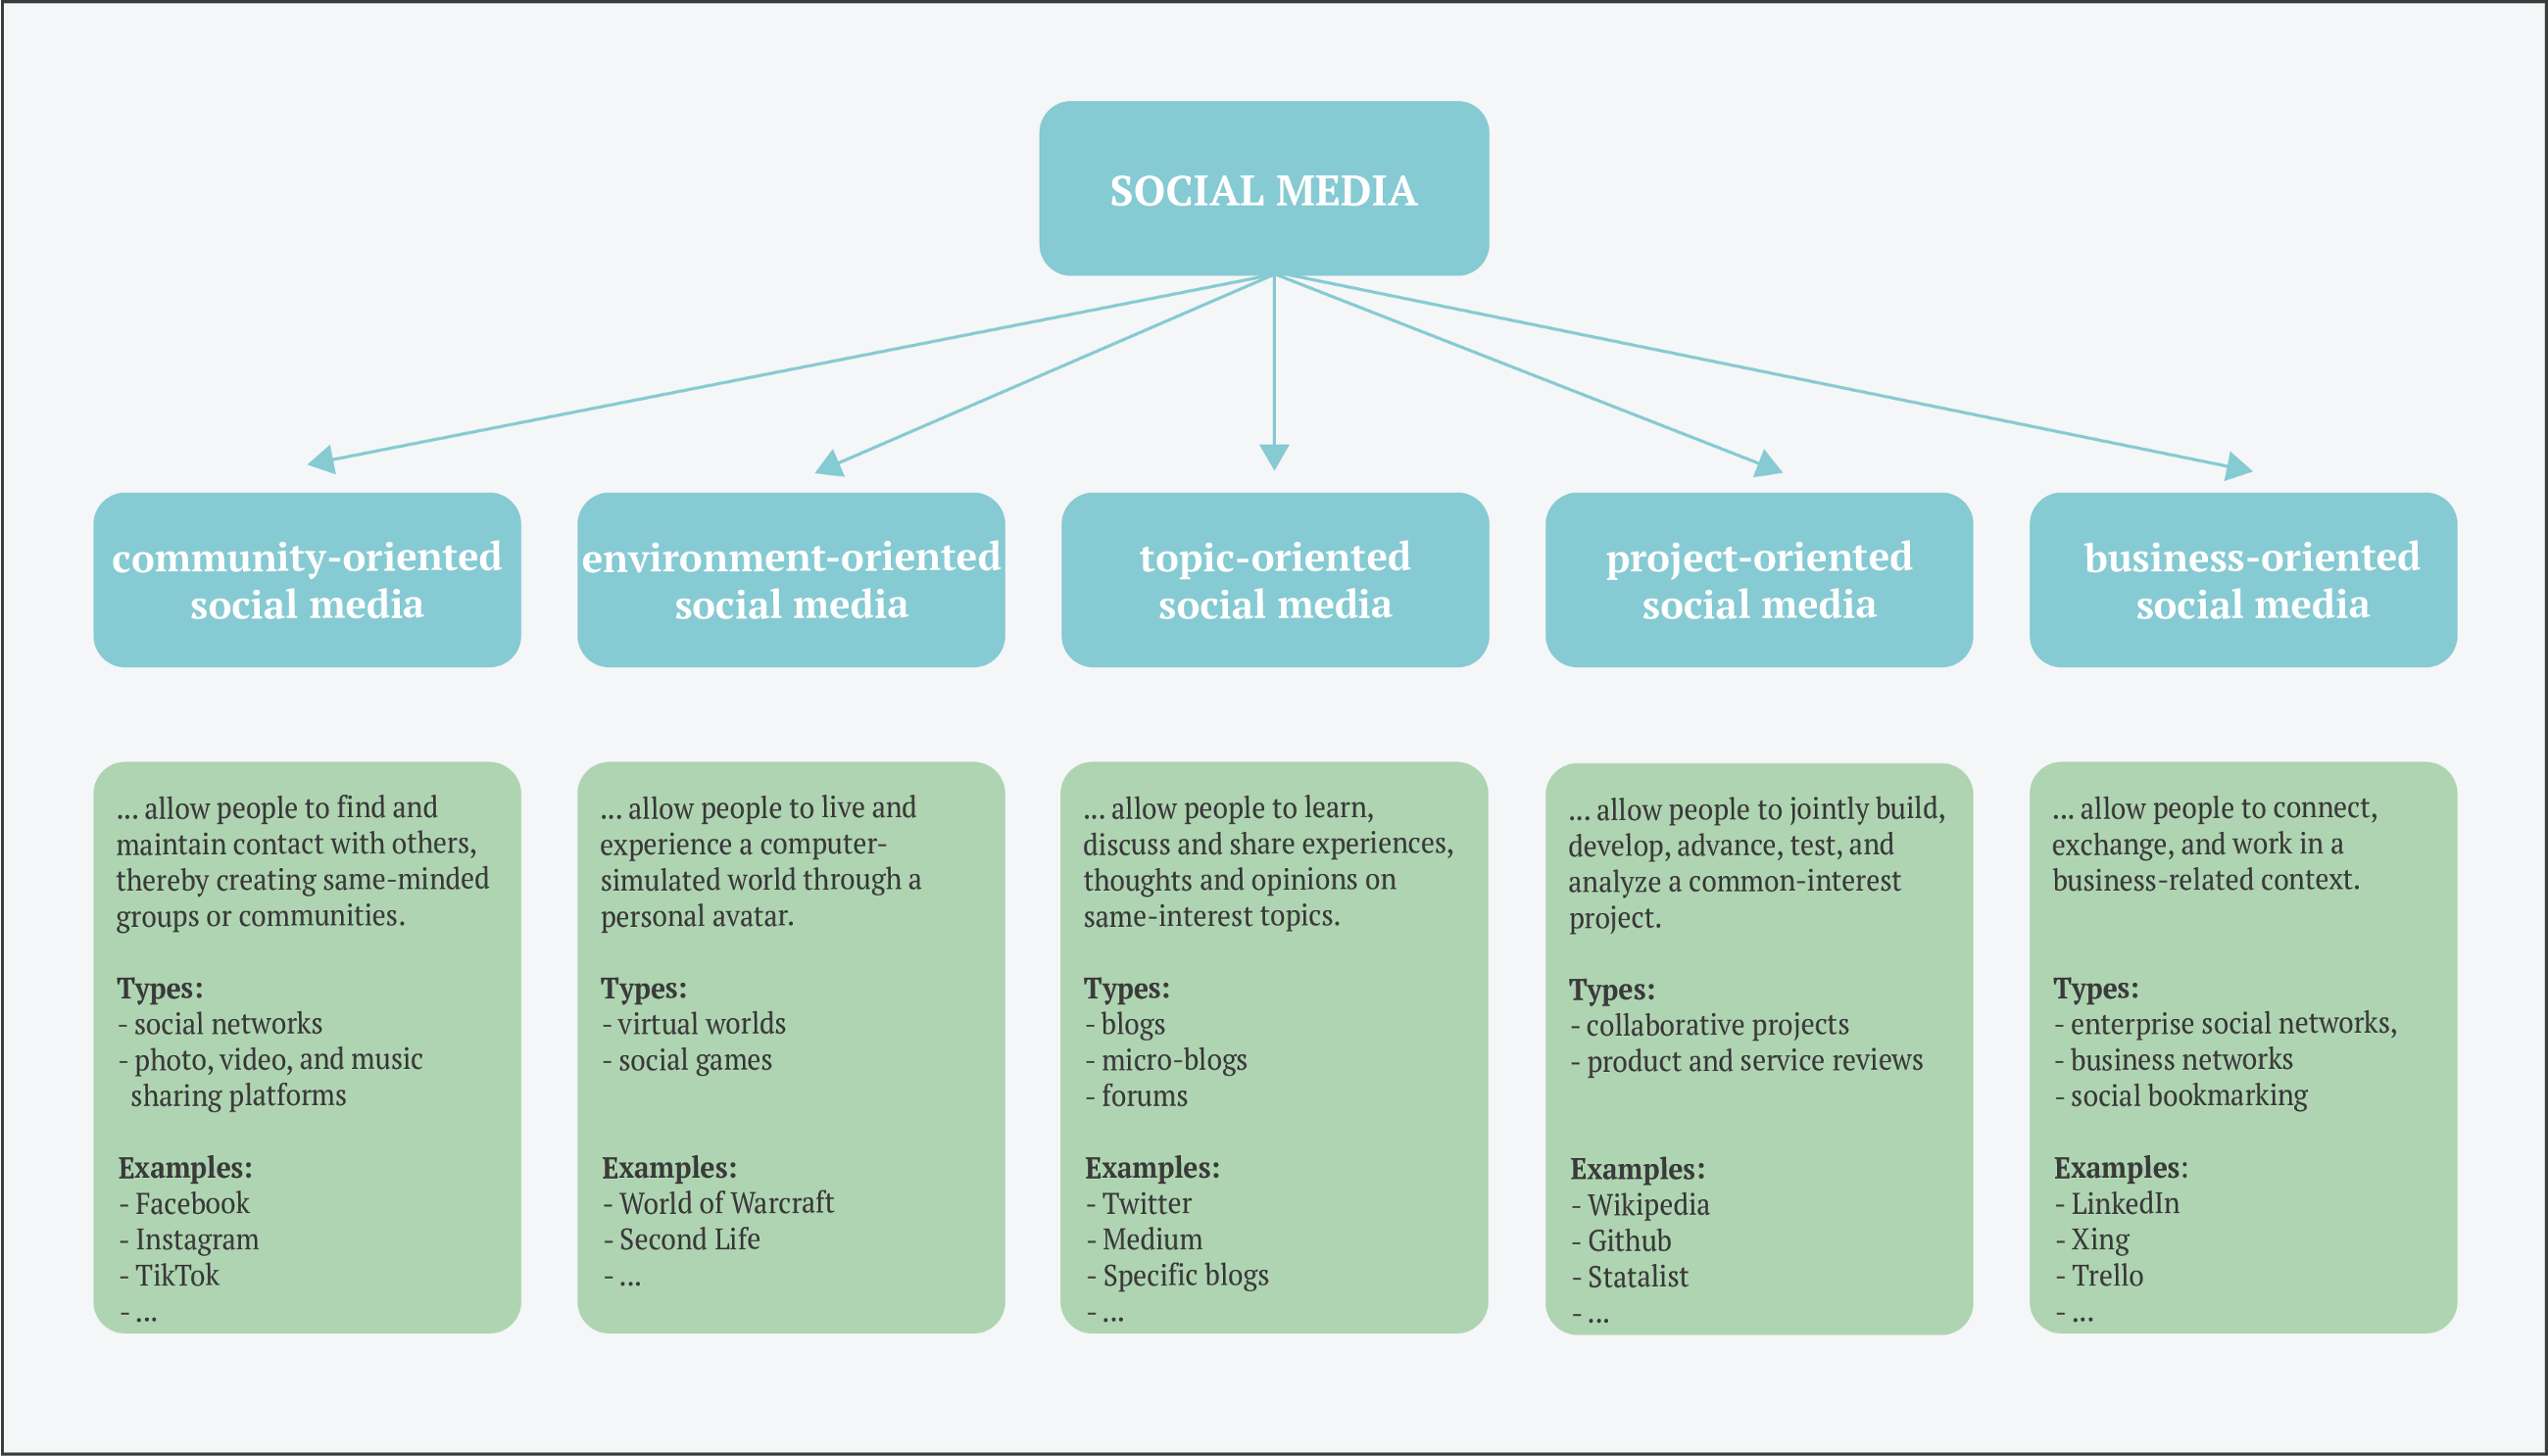 5 different forms of social media